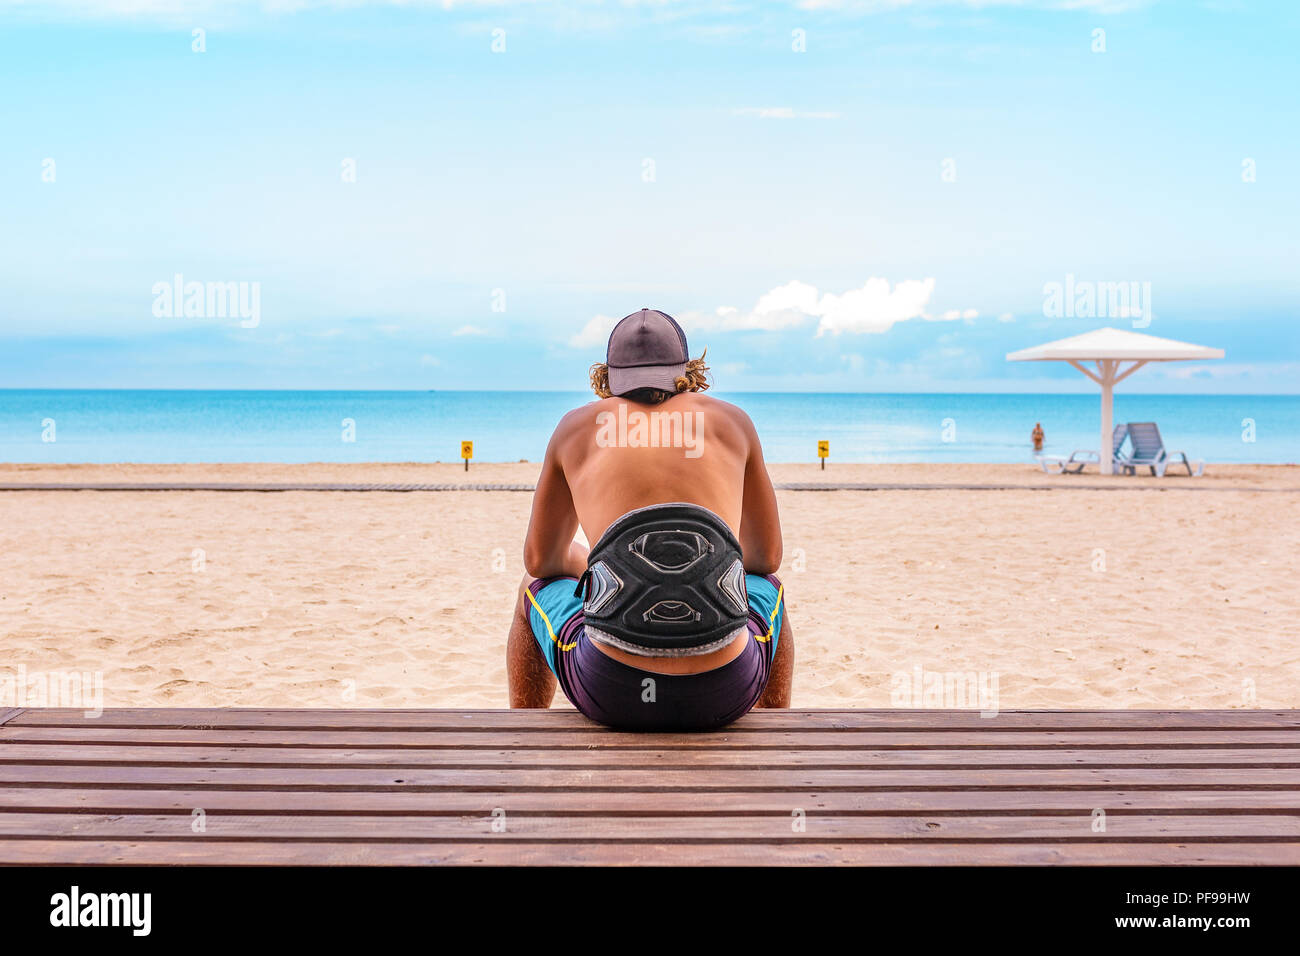 The surfer sits with his back to the camera on the terrace on the beach looking out into the distance, - Stock Image